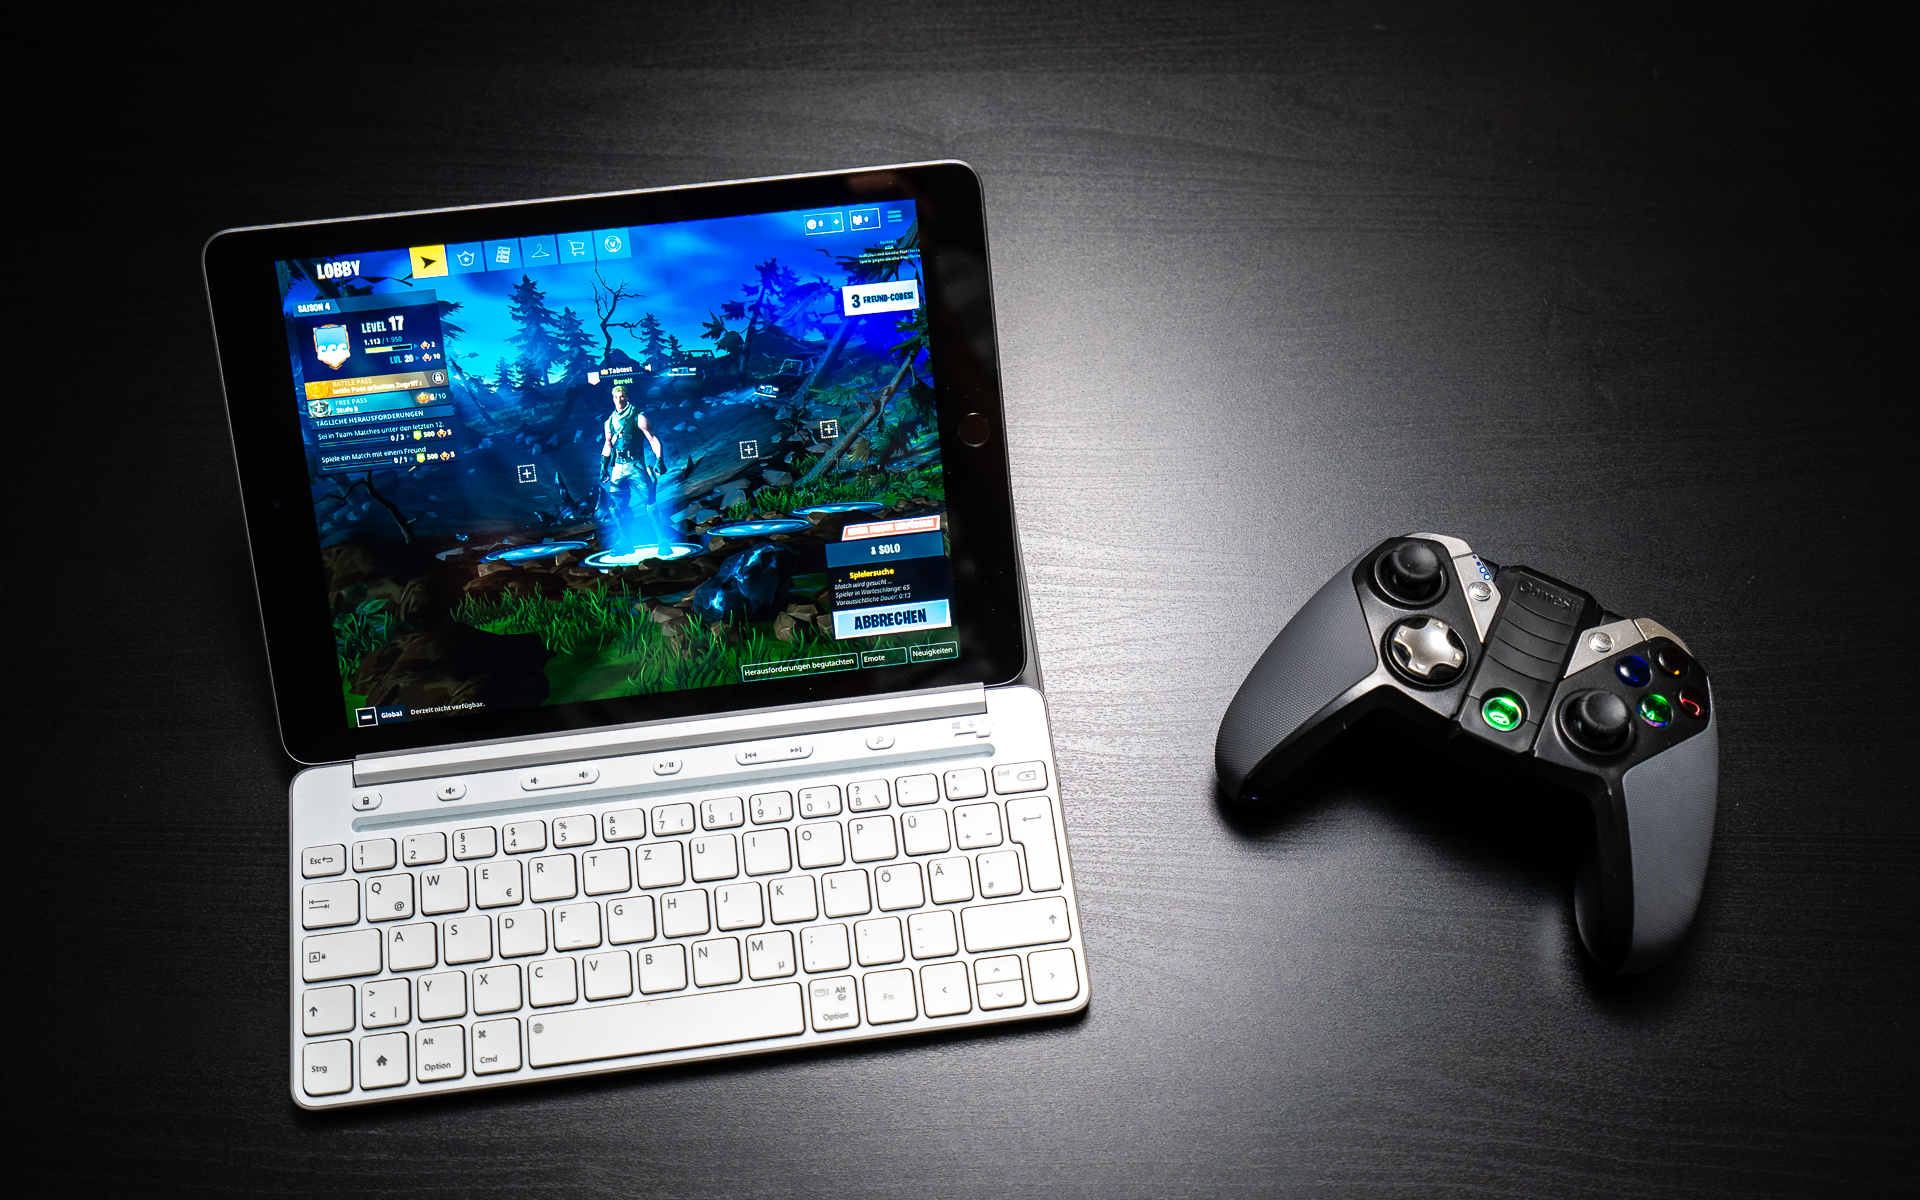 Fortnite for iPad: Can You Play With Keyboard, Mouse Or Controller?